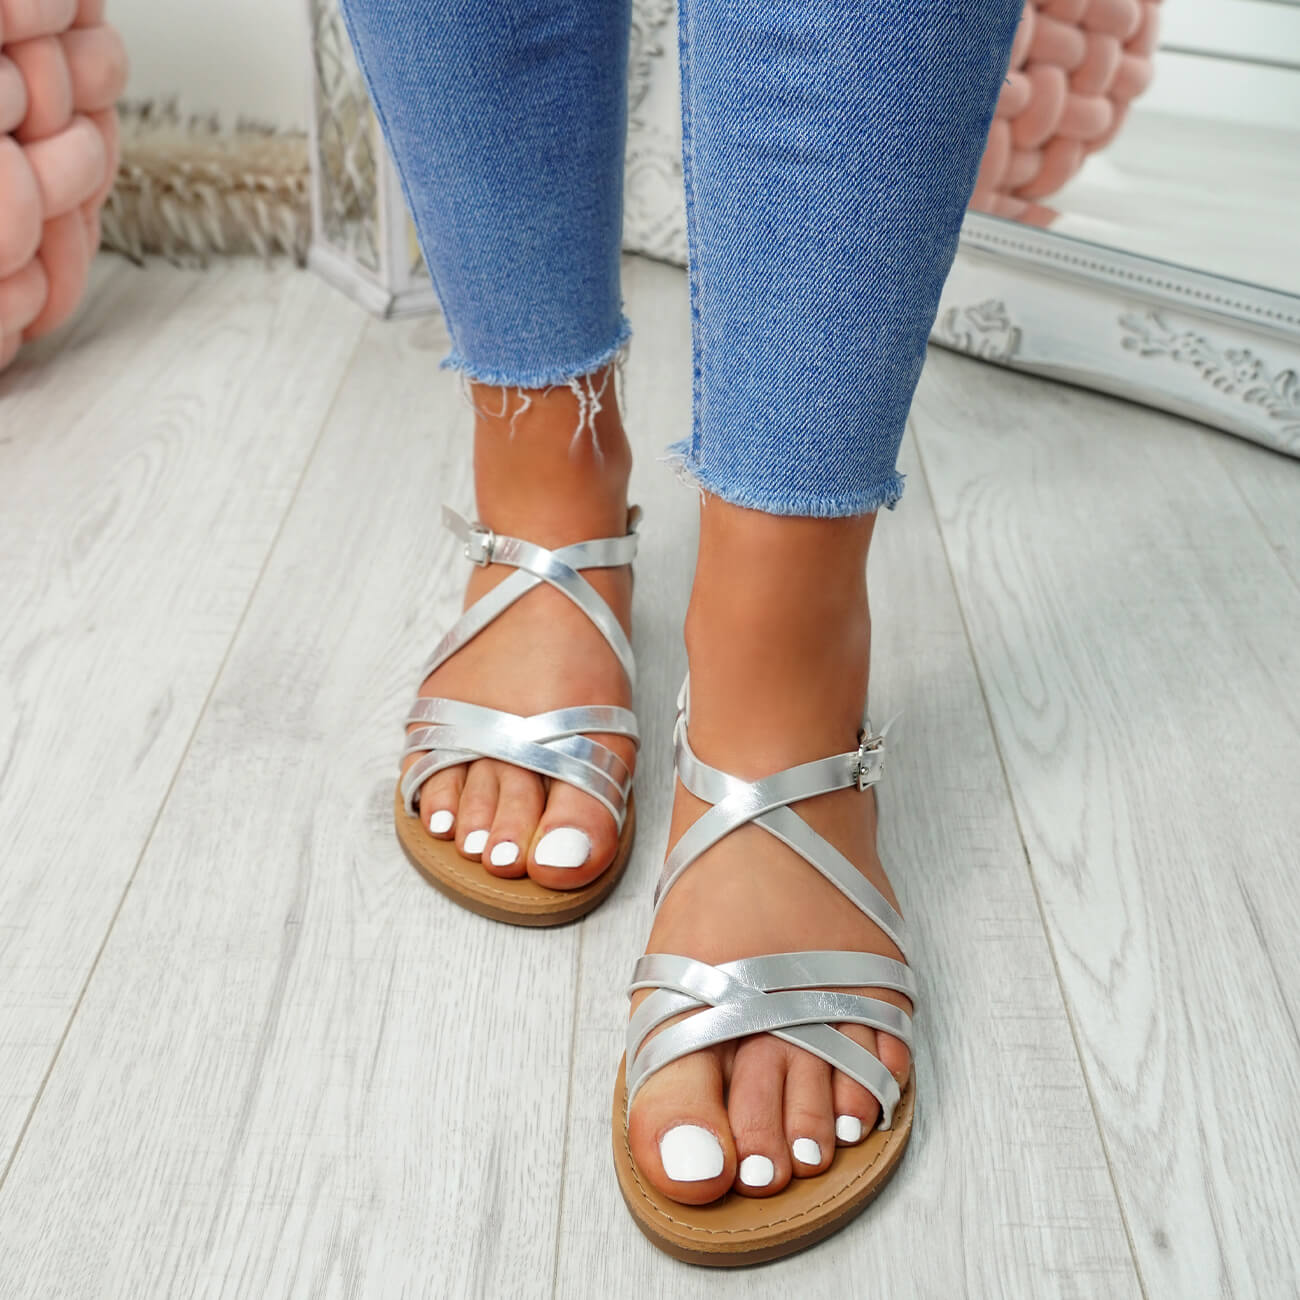 WOMENS-LADIES-ANKLE-STRAP-PEEP-TOE-BUCKLE-FLAT-SANDALS-SUMMER-CASUAL-SHOES thumbnail 22